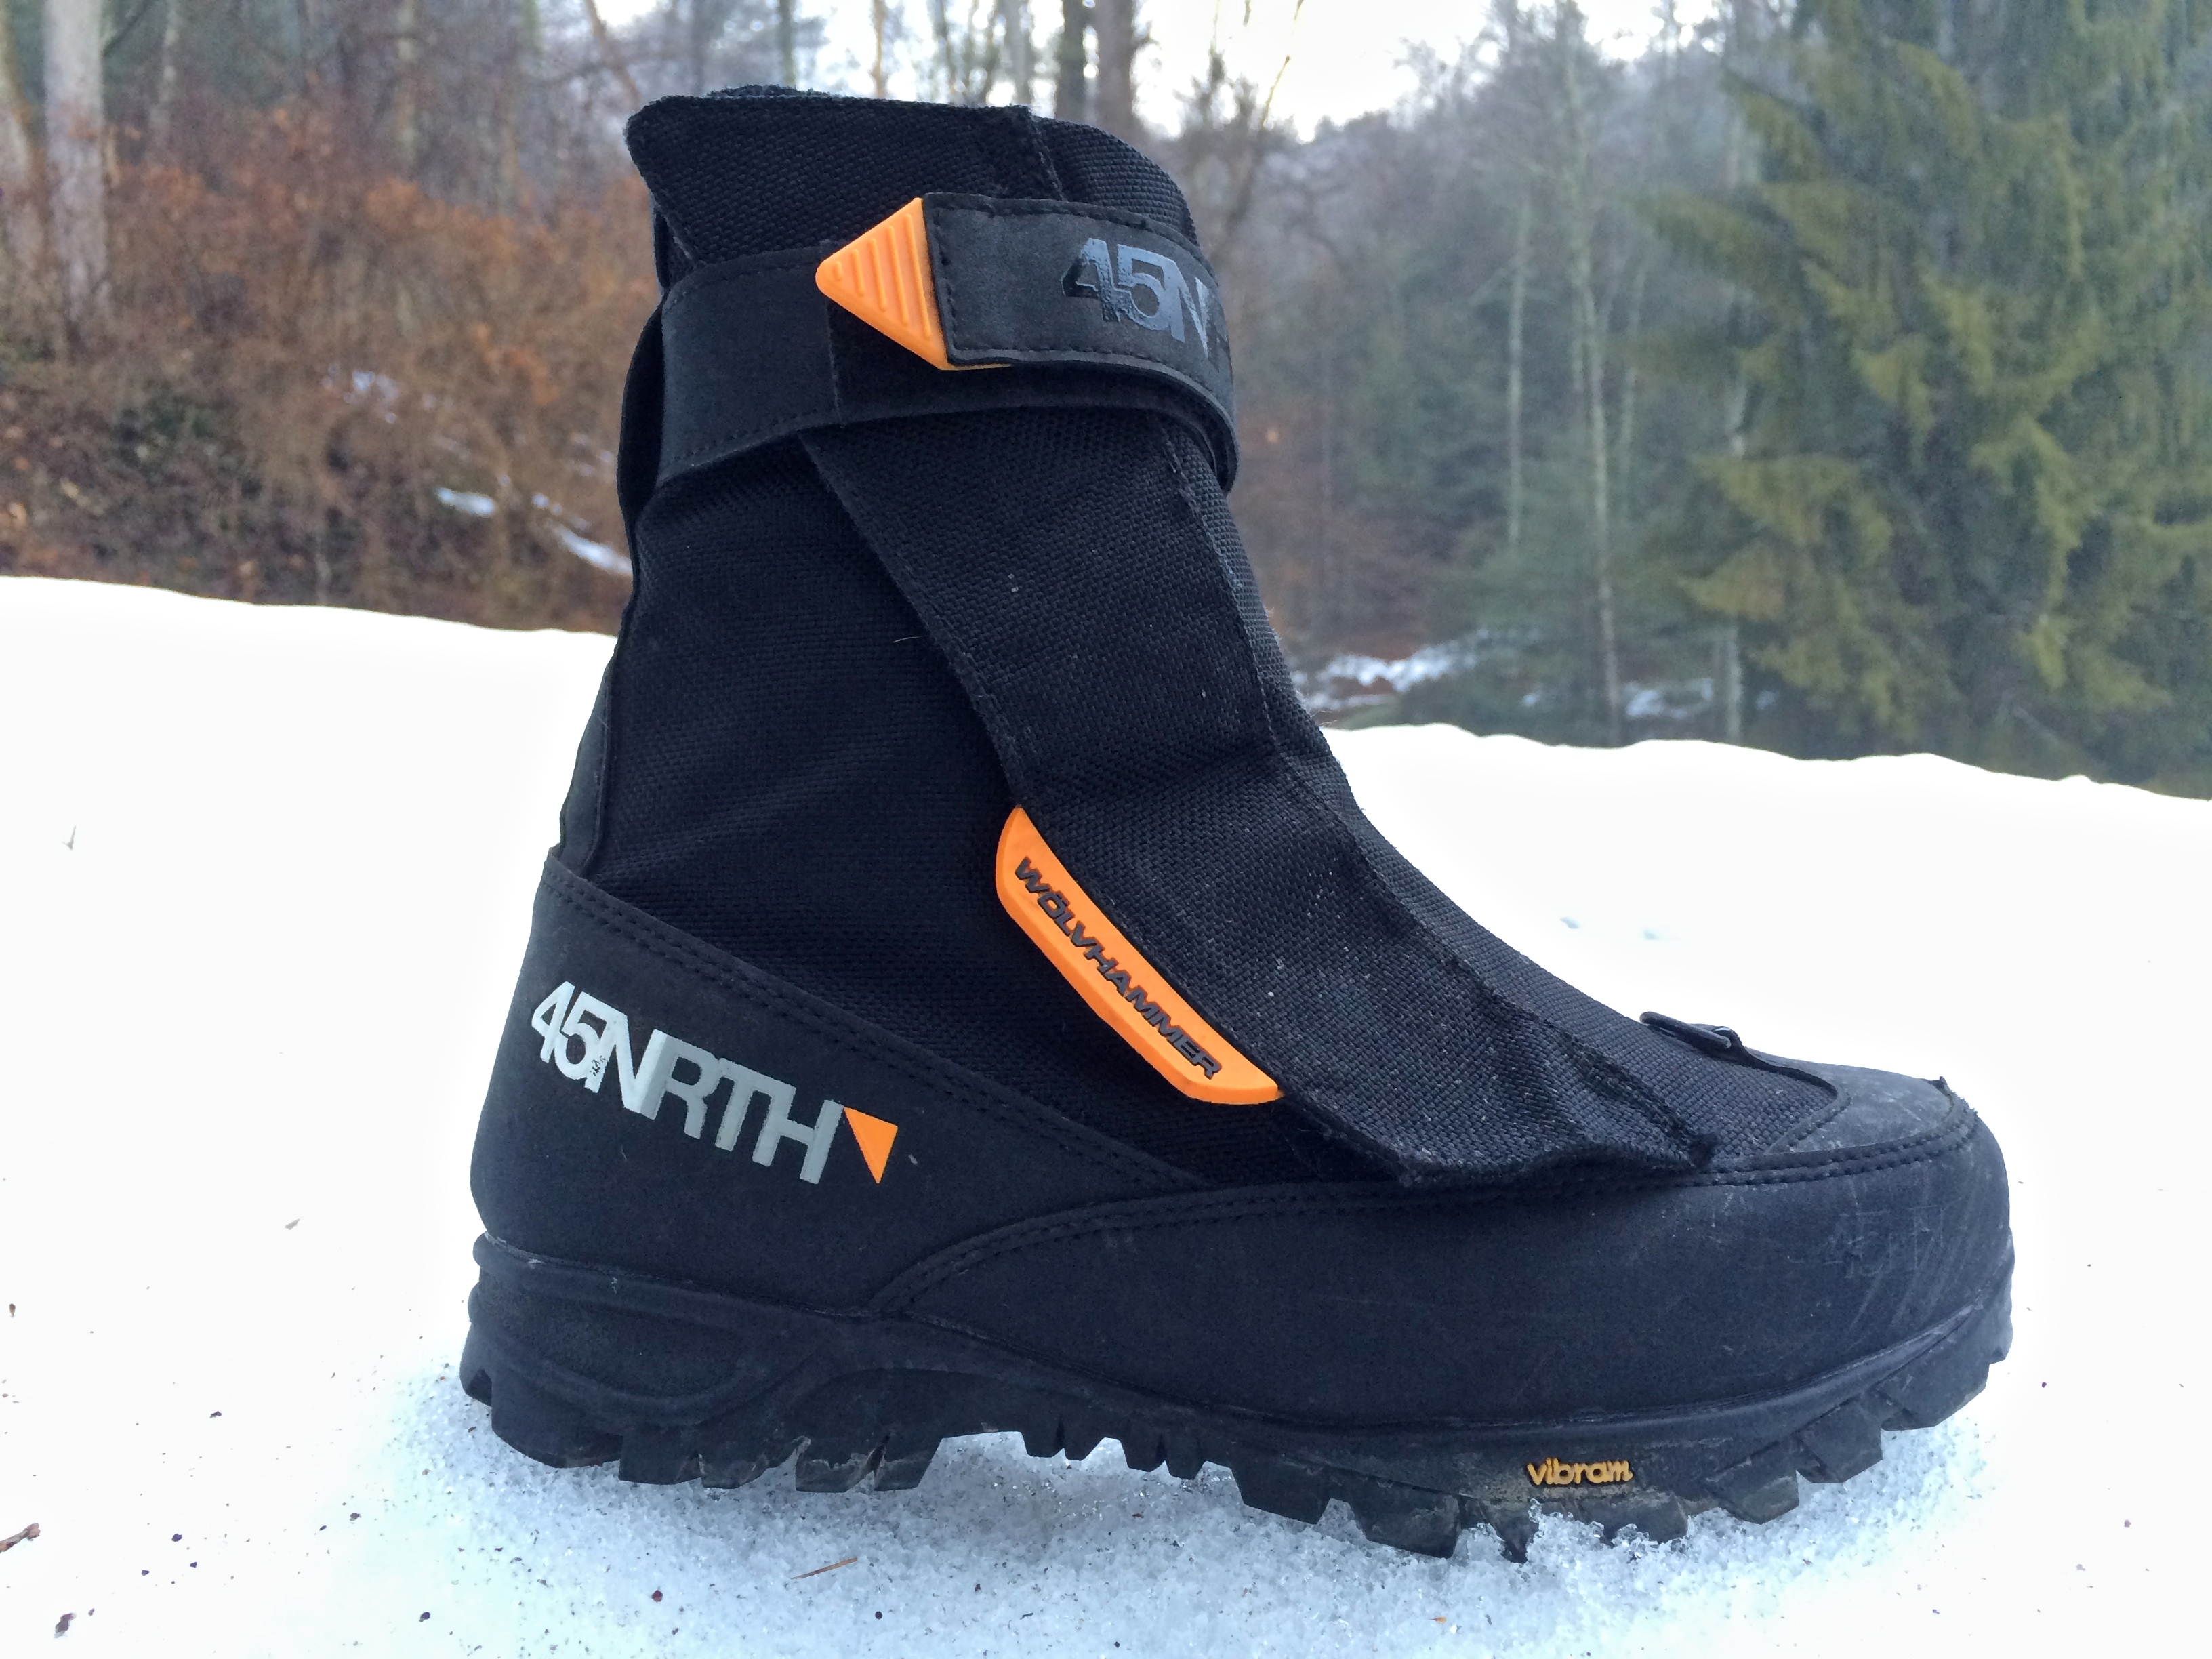 Review 45nrth Wolvhammer Winter Mountain Bike Shoes